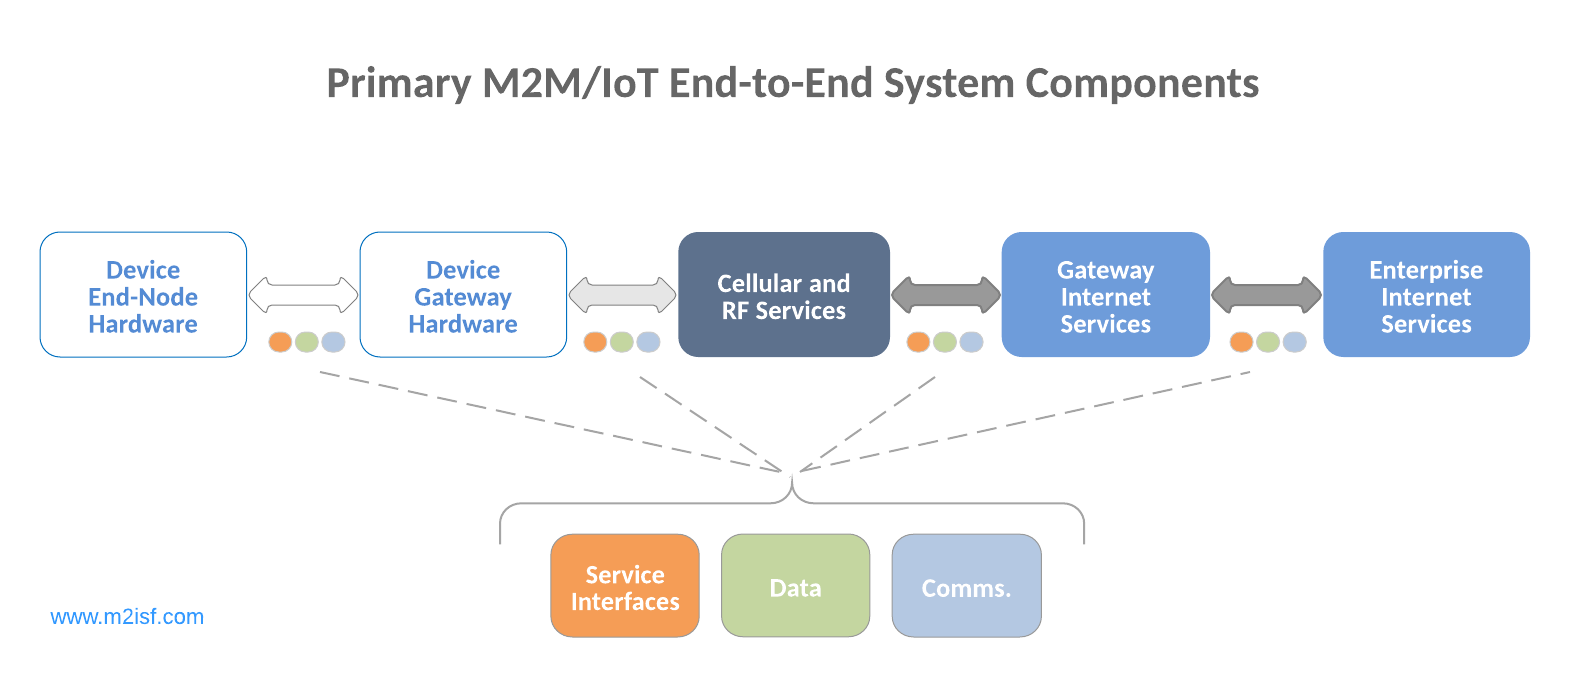 M2M and IoT Primary End-to-End System Components